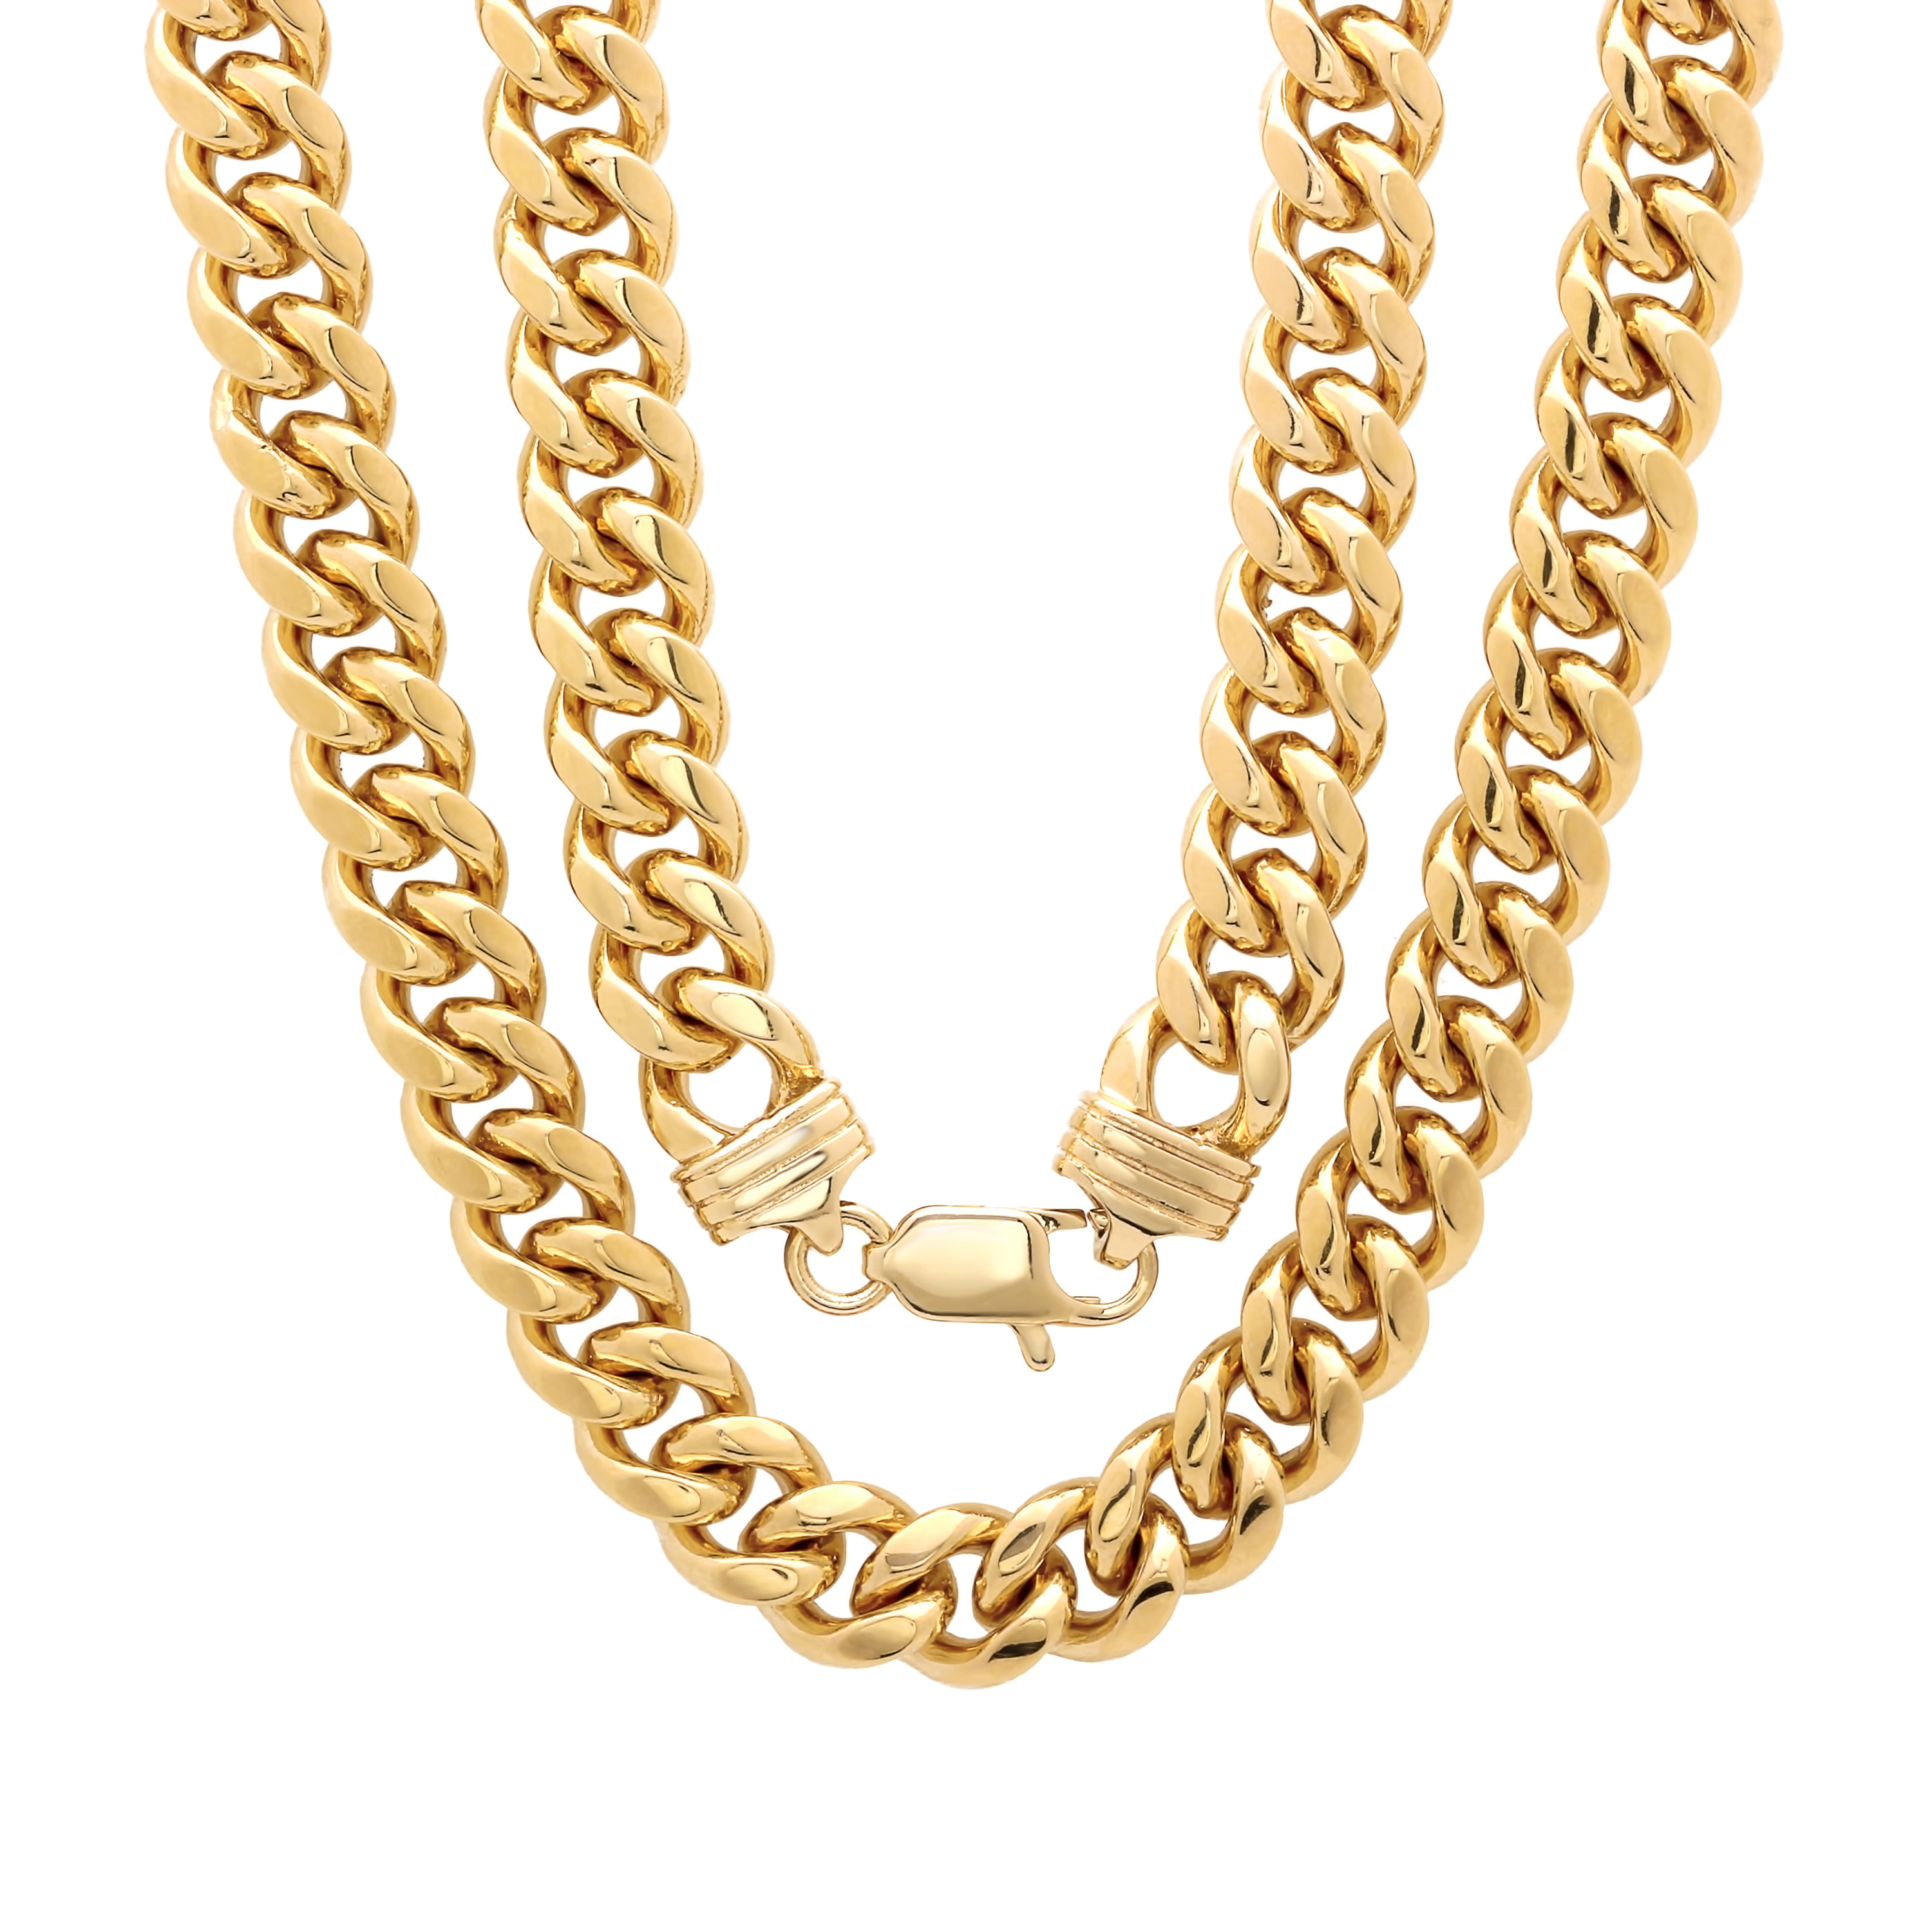 gift jewelry box chain gold filled yellow pretty idea classy k necklace chains boys gf mens